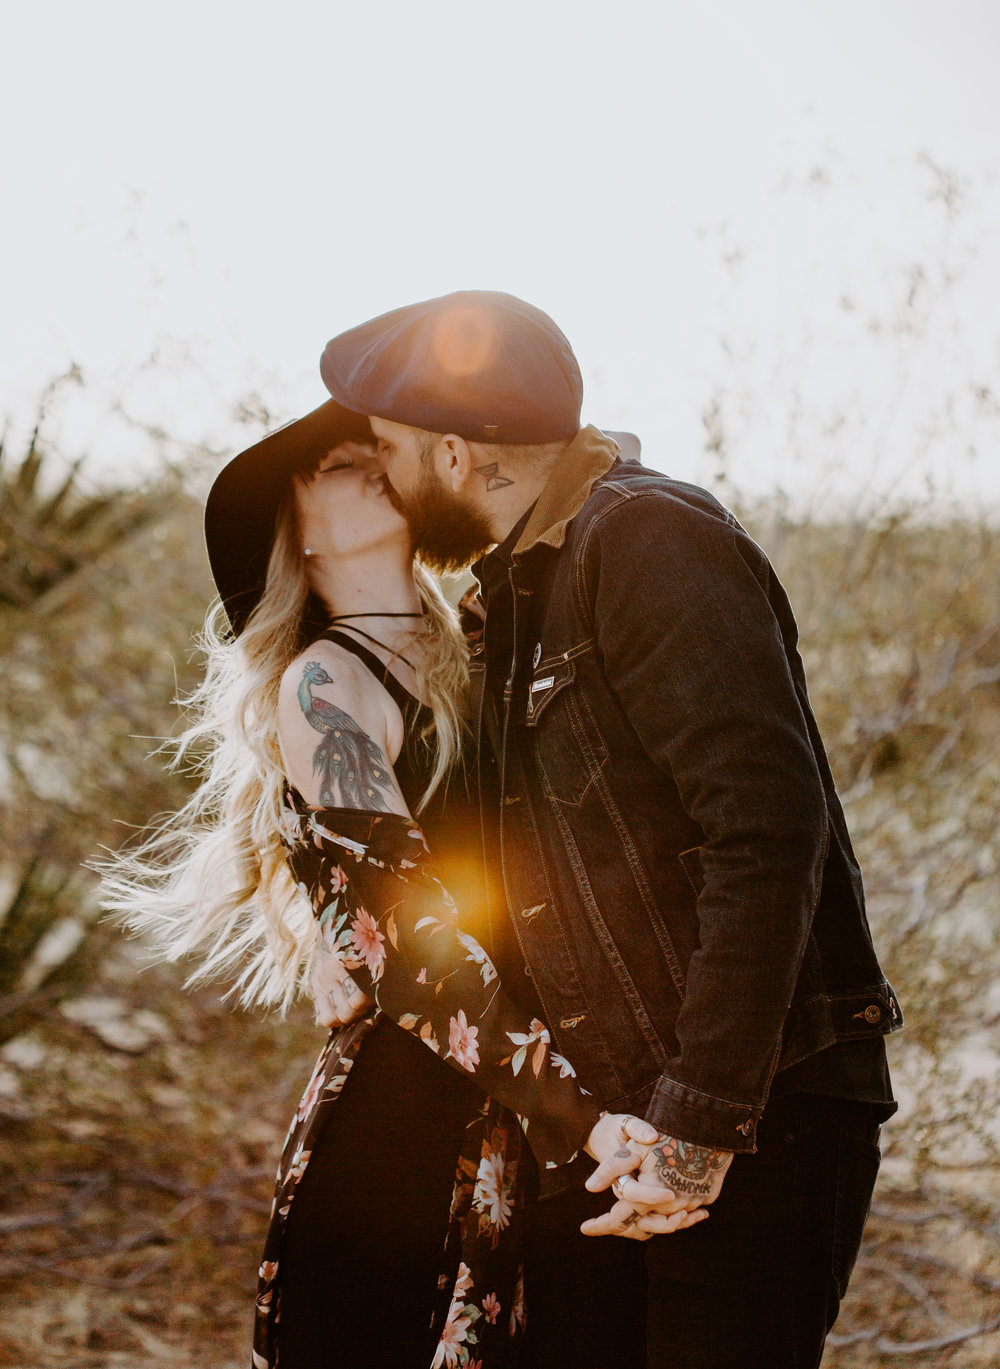 nicole-daacke-photography-joshua-tree-cactus-garden-engagement-photos-joshua-tree-national-park-enegagement-session-edgy-hipster-california-cholla-garden-golden-sunset-session-46.jpg